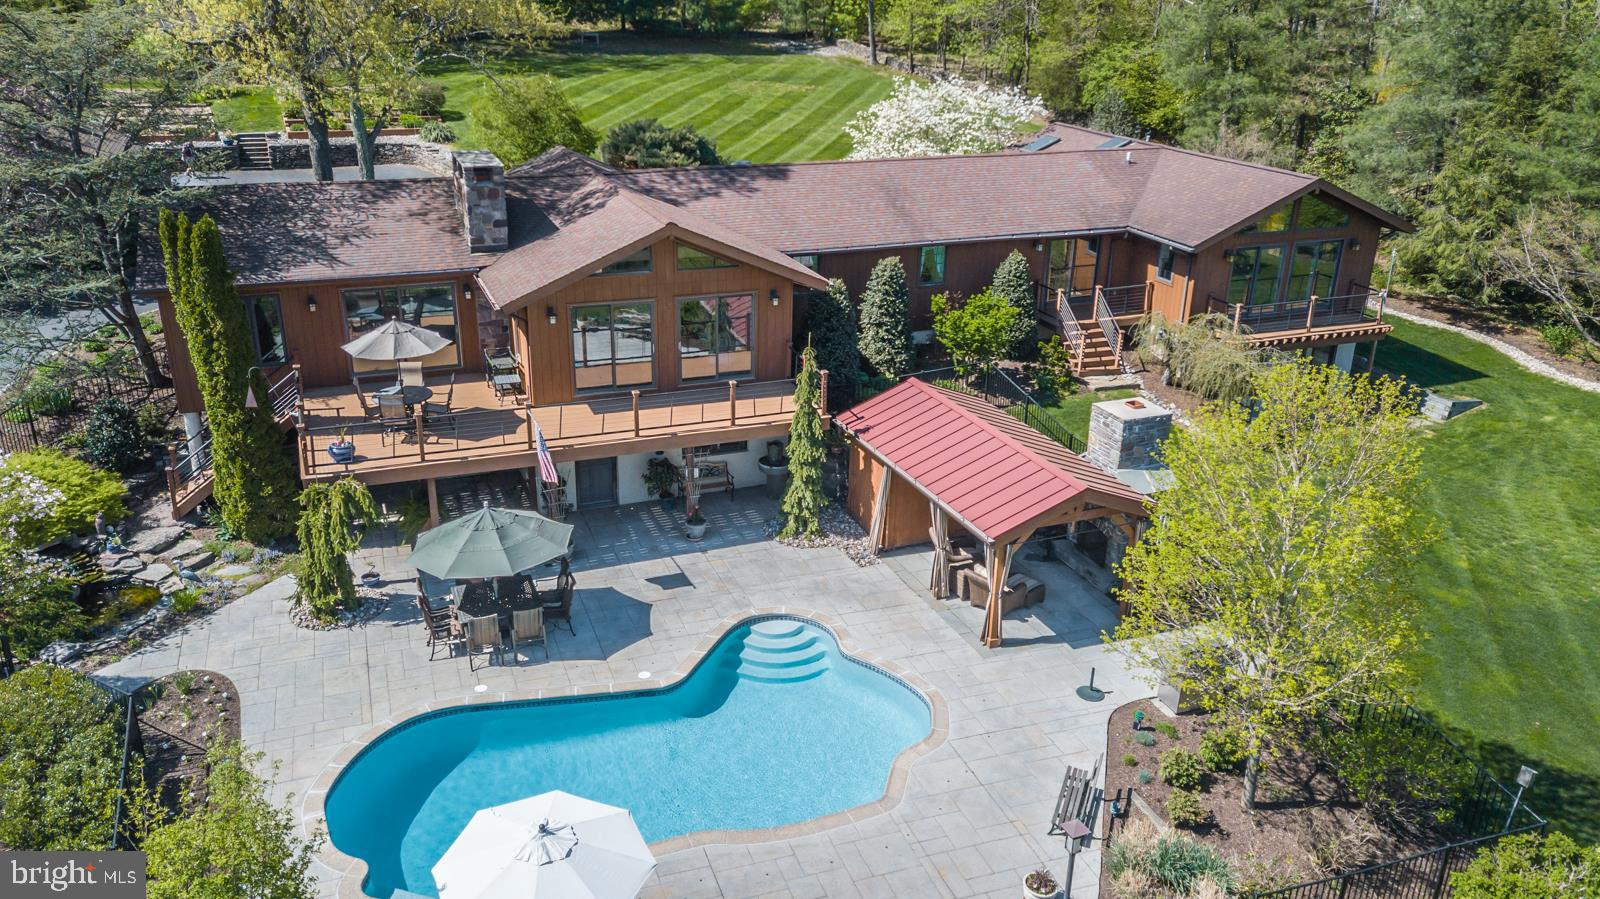 3875 CURLY HILL ROAD, DOYLESTOWN, PA 18902